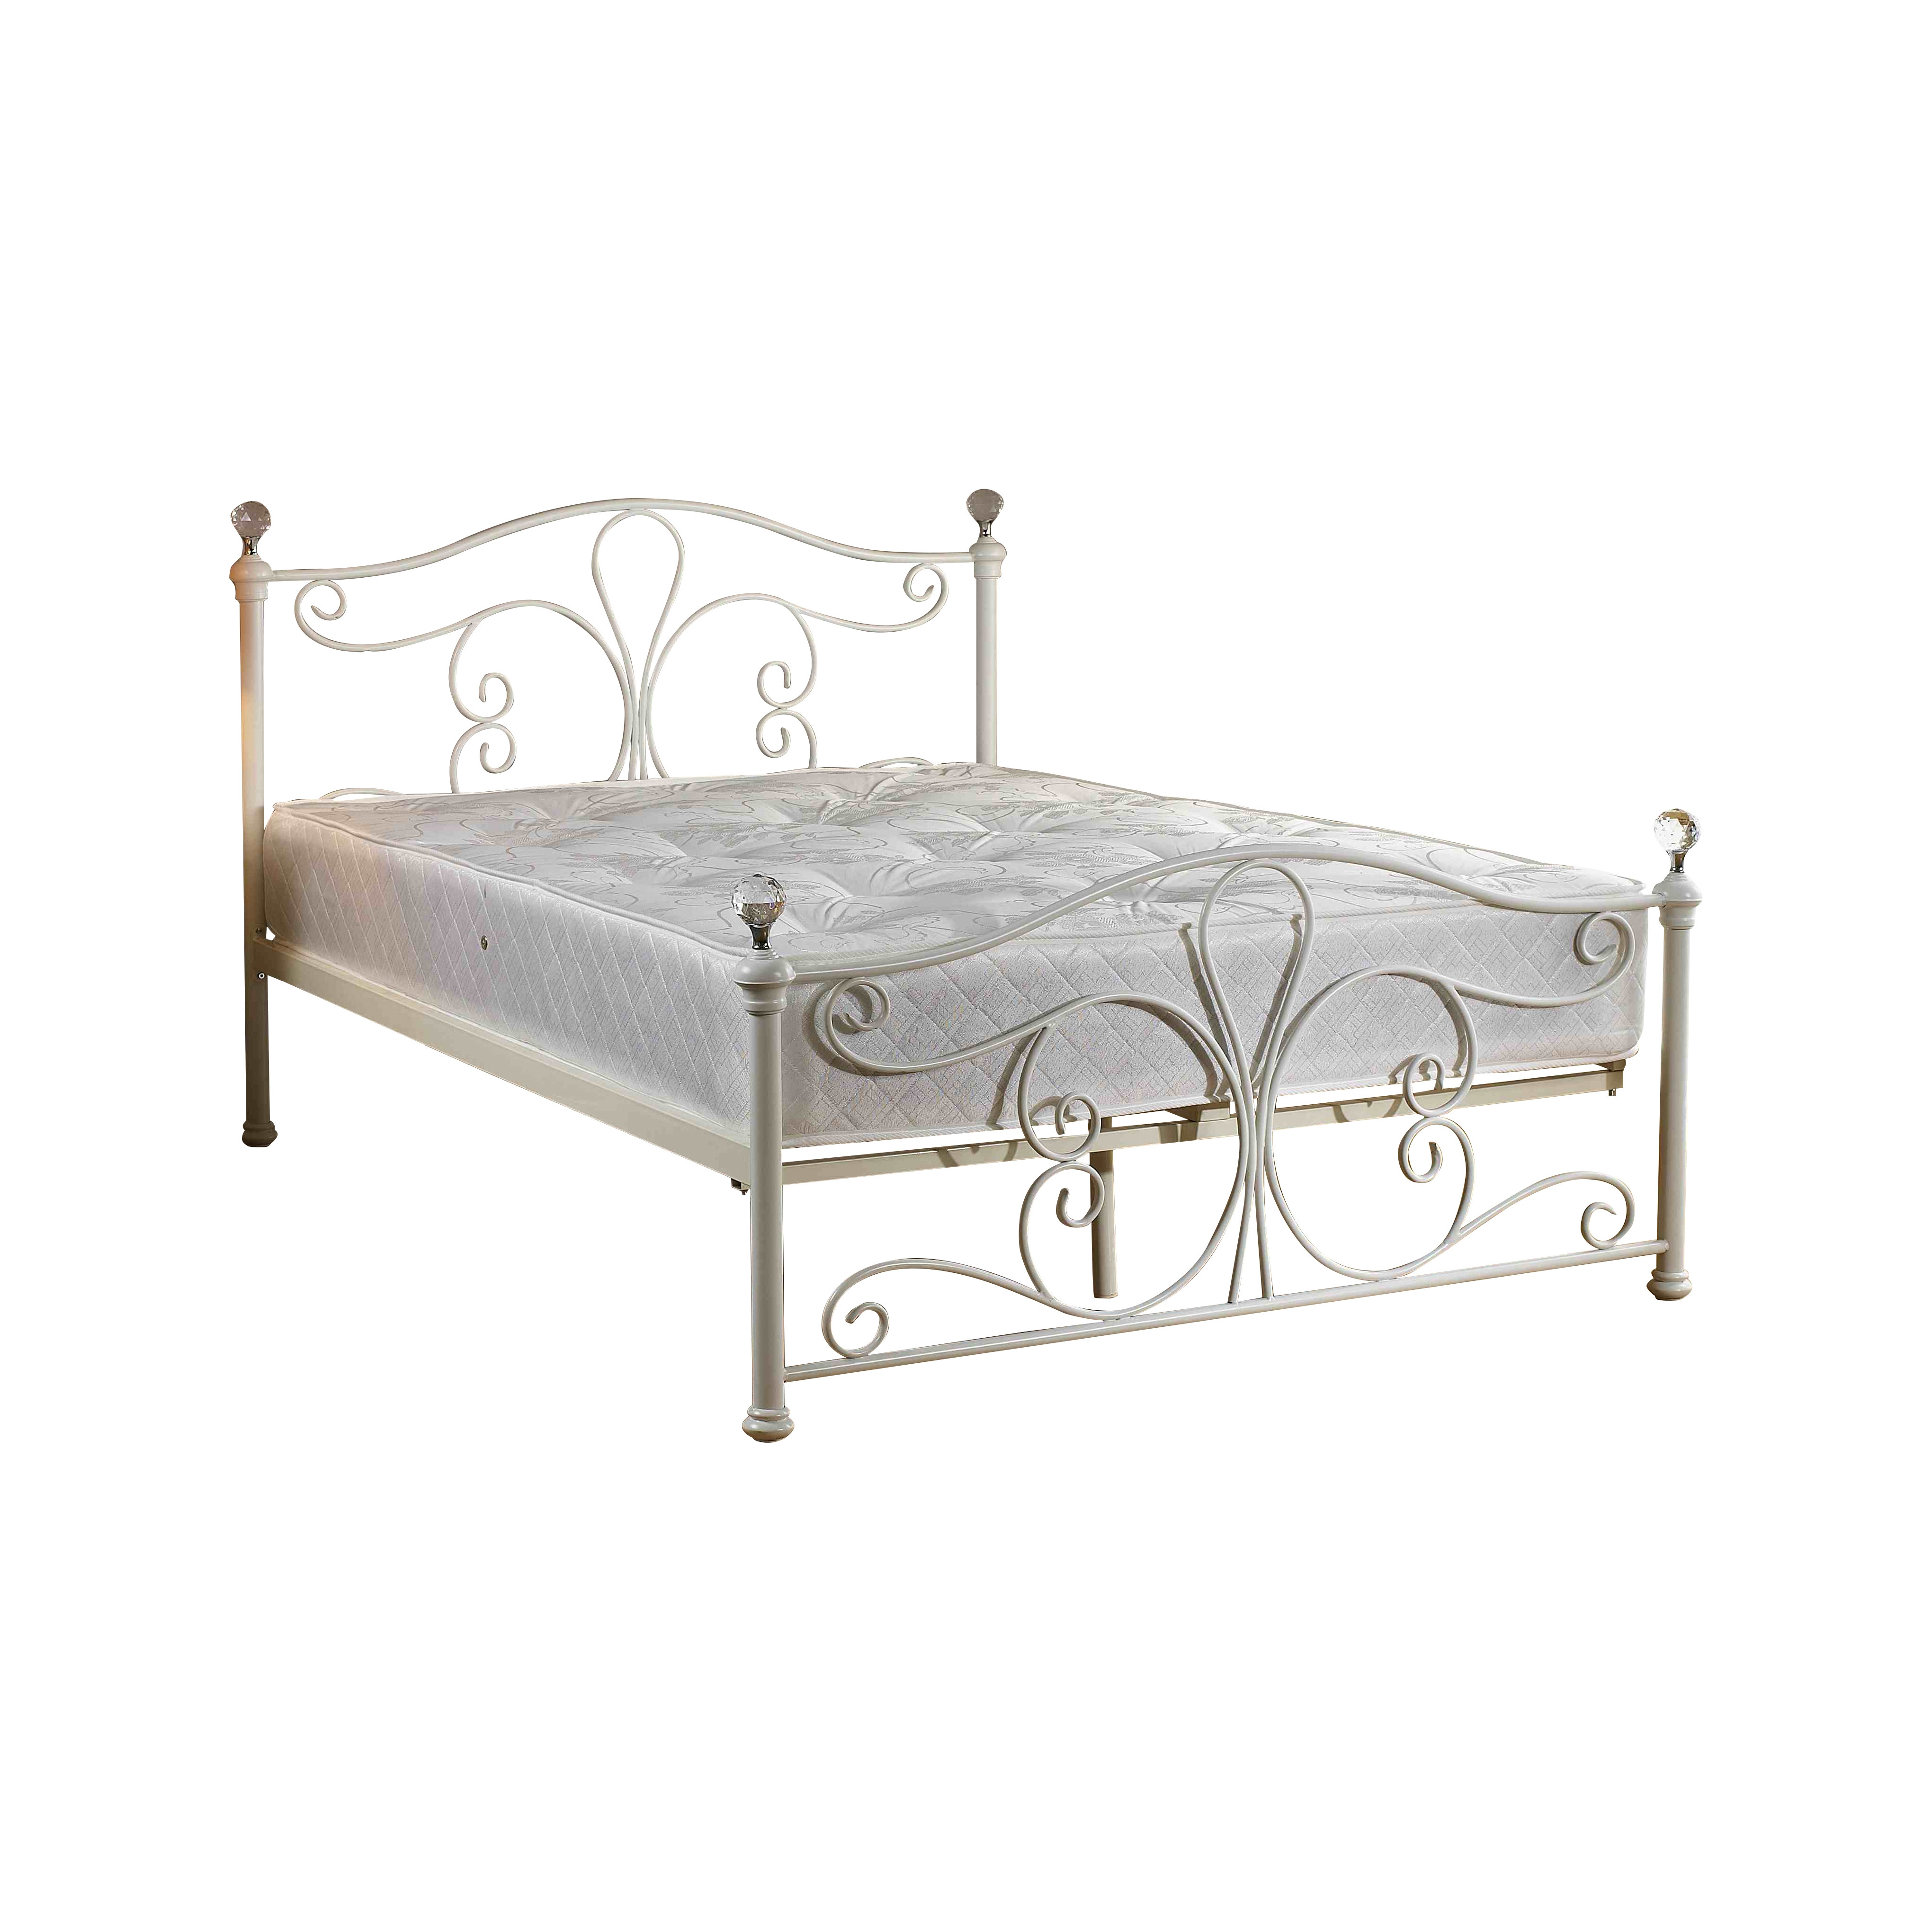 European Double Bed Frame